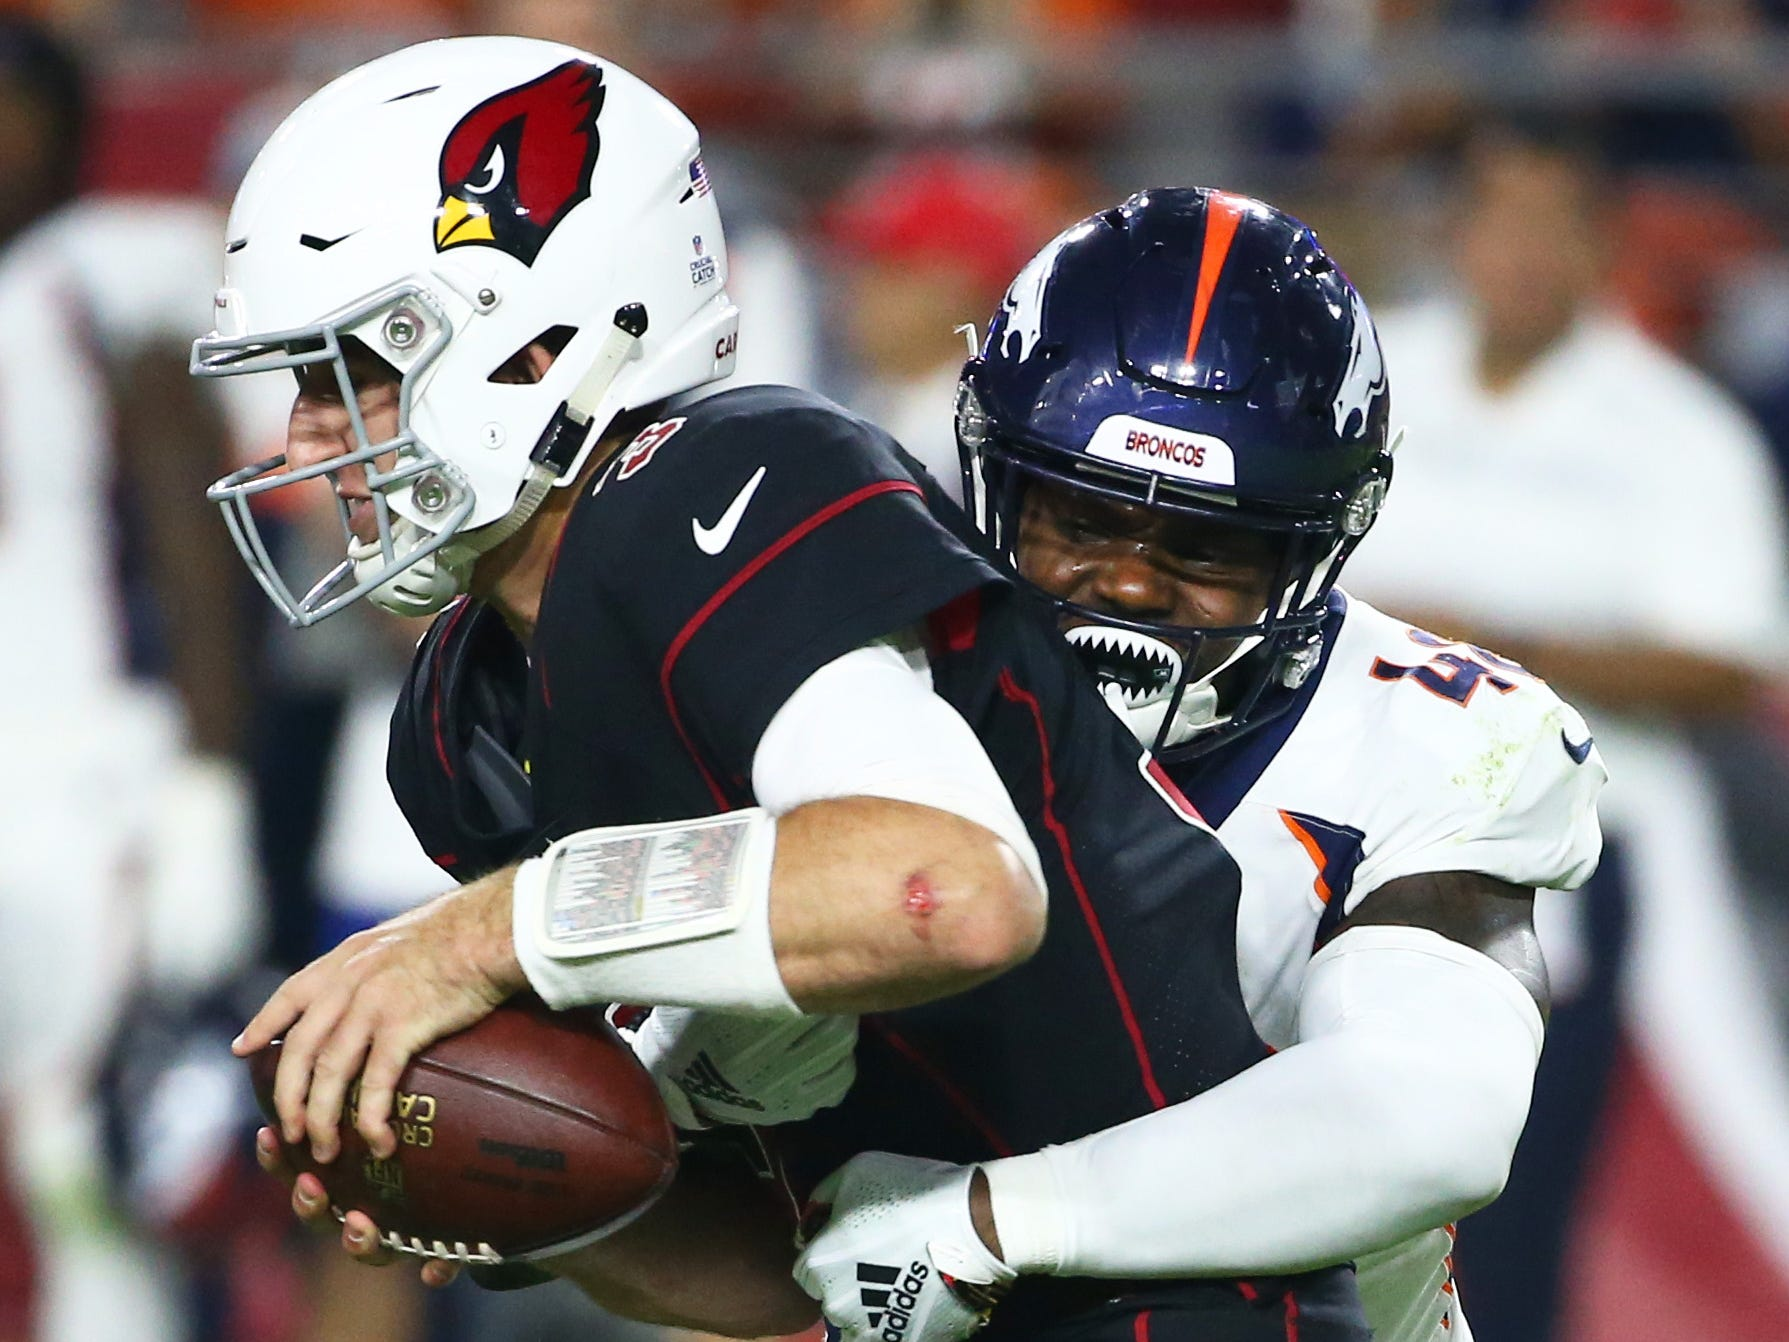 Arizona Cardinals Josh Rosen is sacked by Denver Broncos Shaquil Barrett in the first half at State Farm Stadium in Glendale, Ariz.